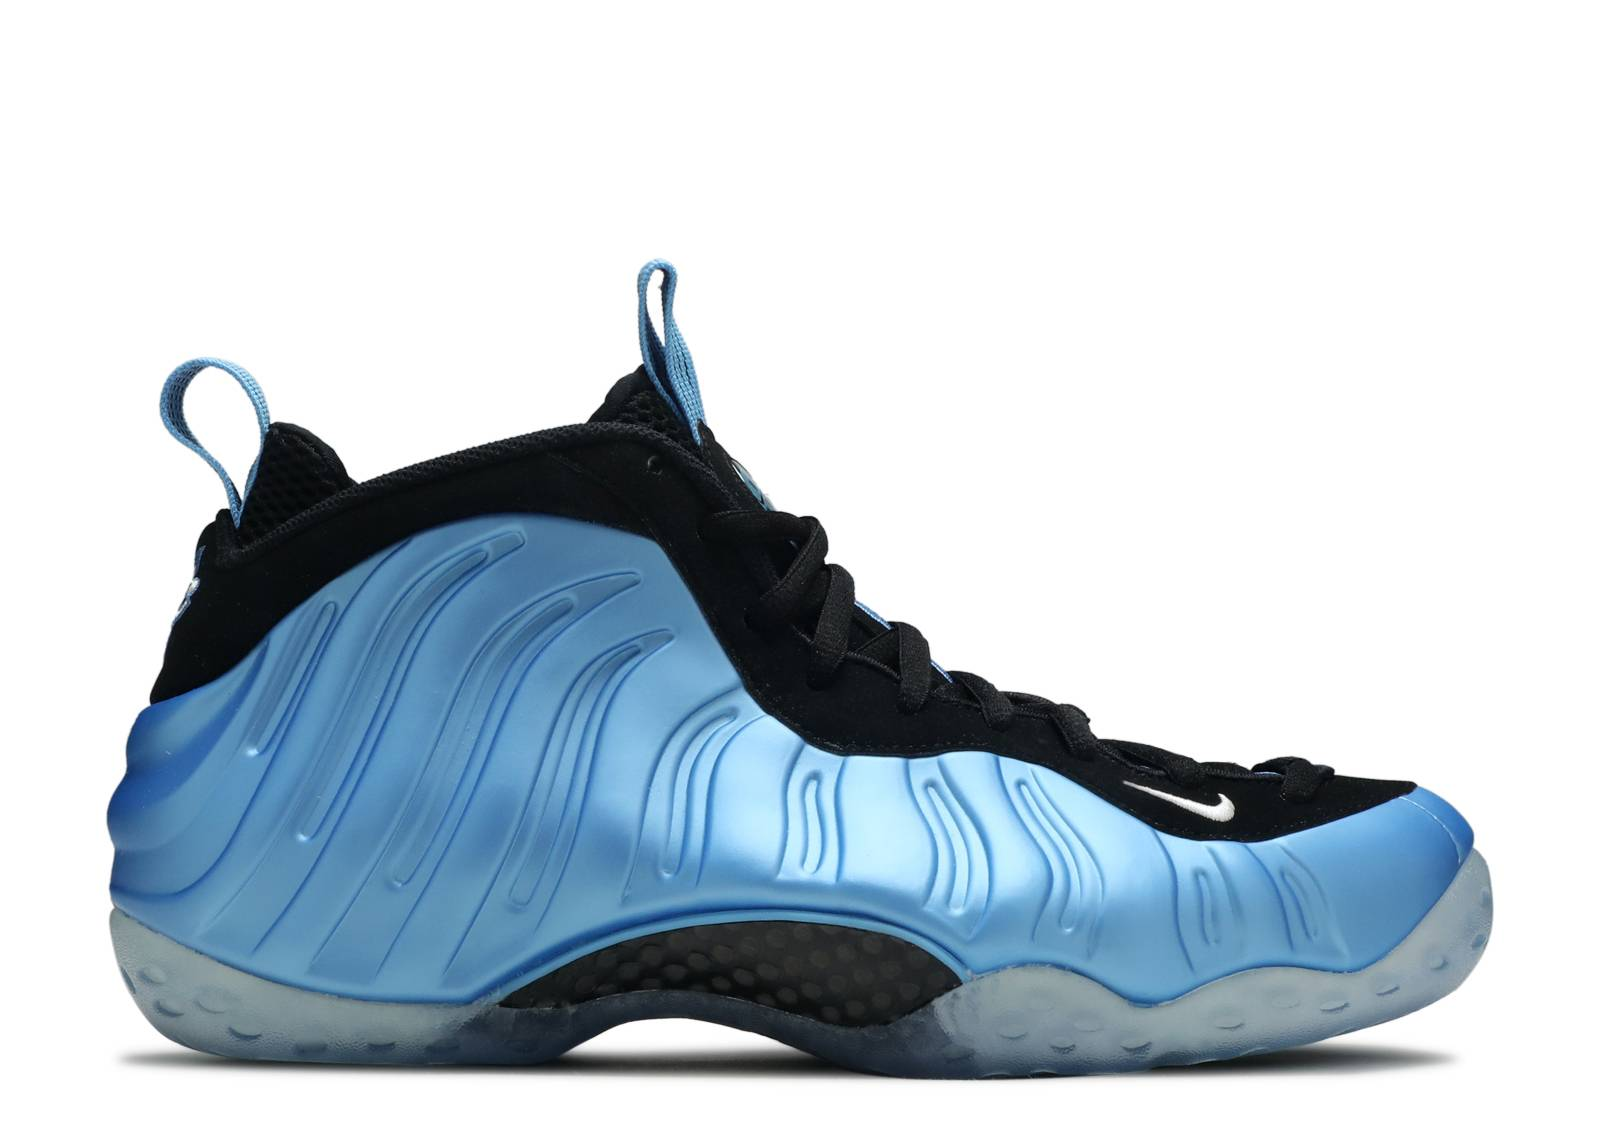 933340f0193 nike foamposite cheap   OFF59% The Largest Catalog Discounts